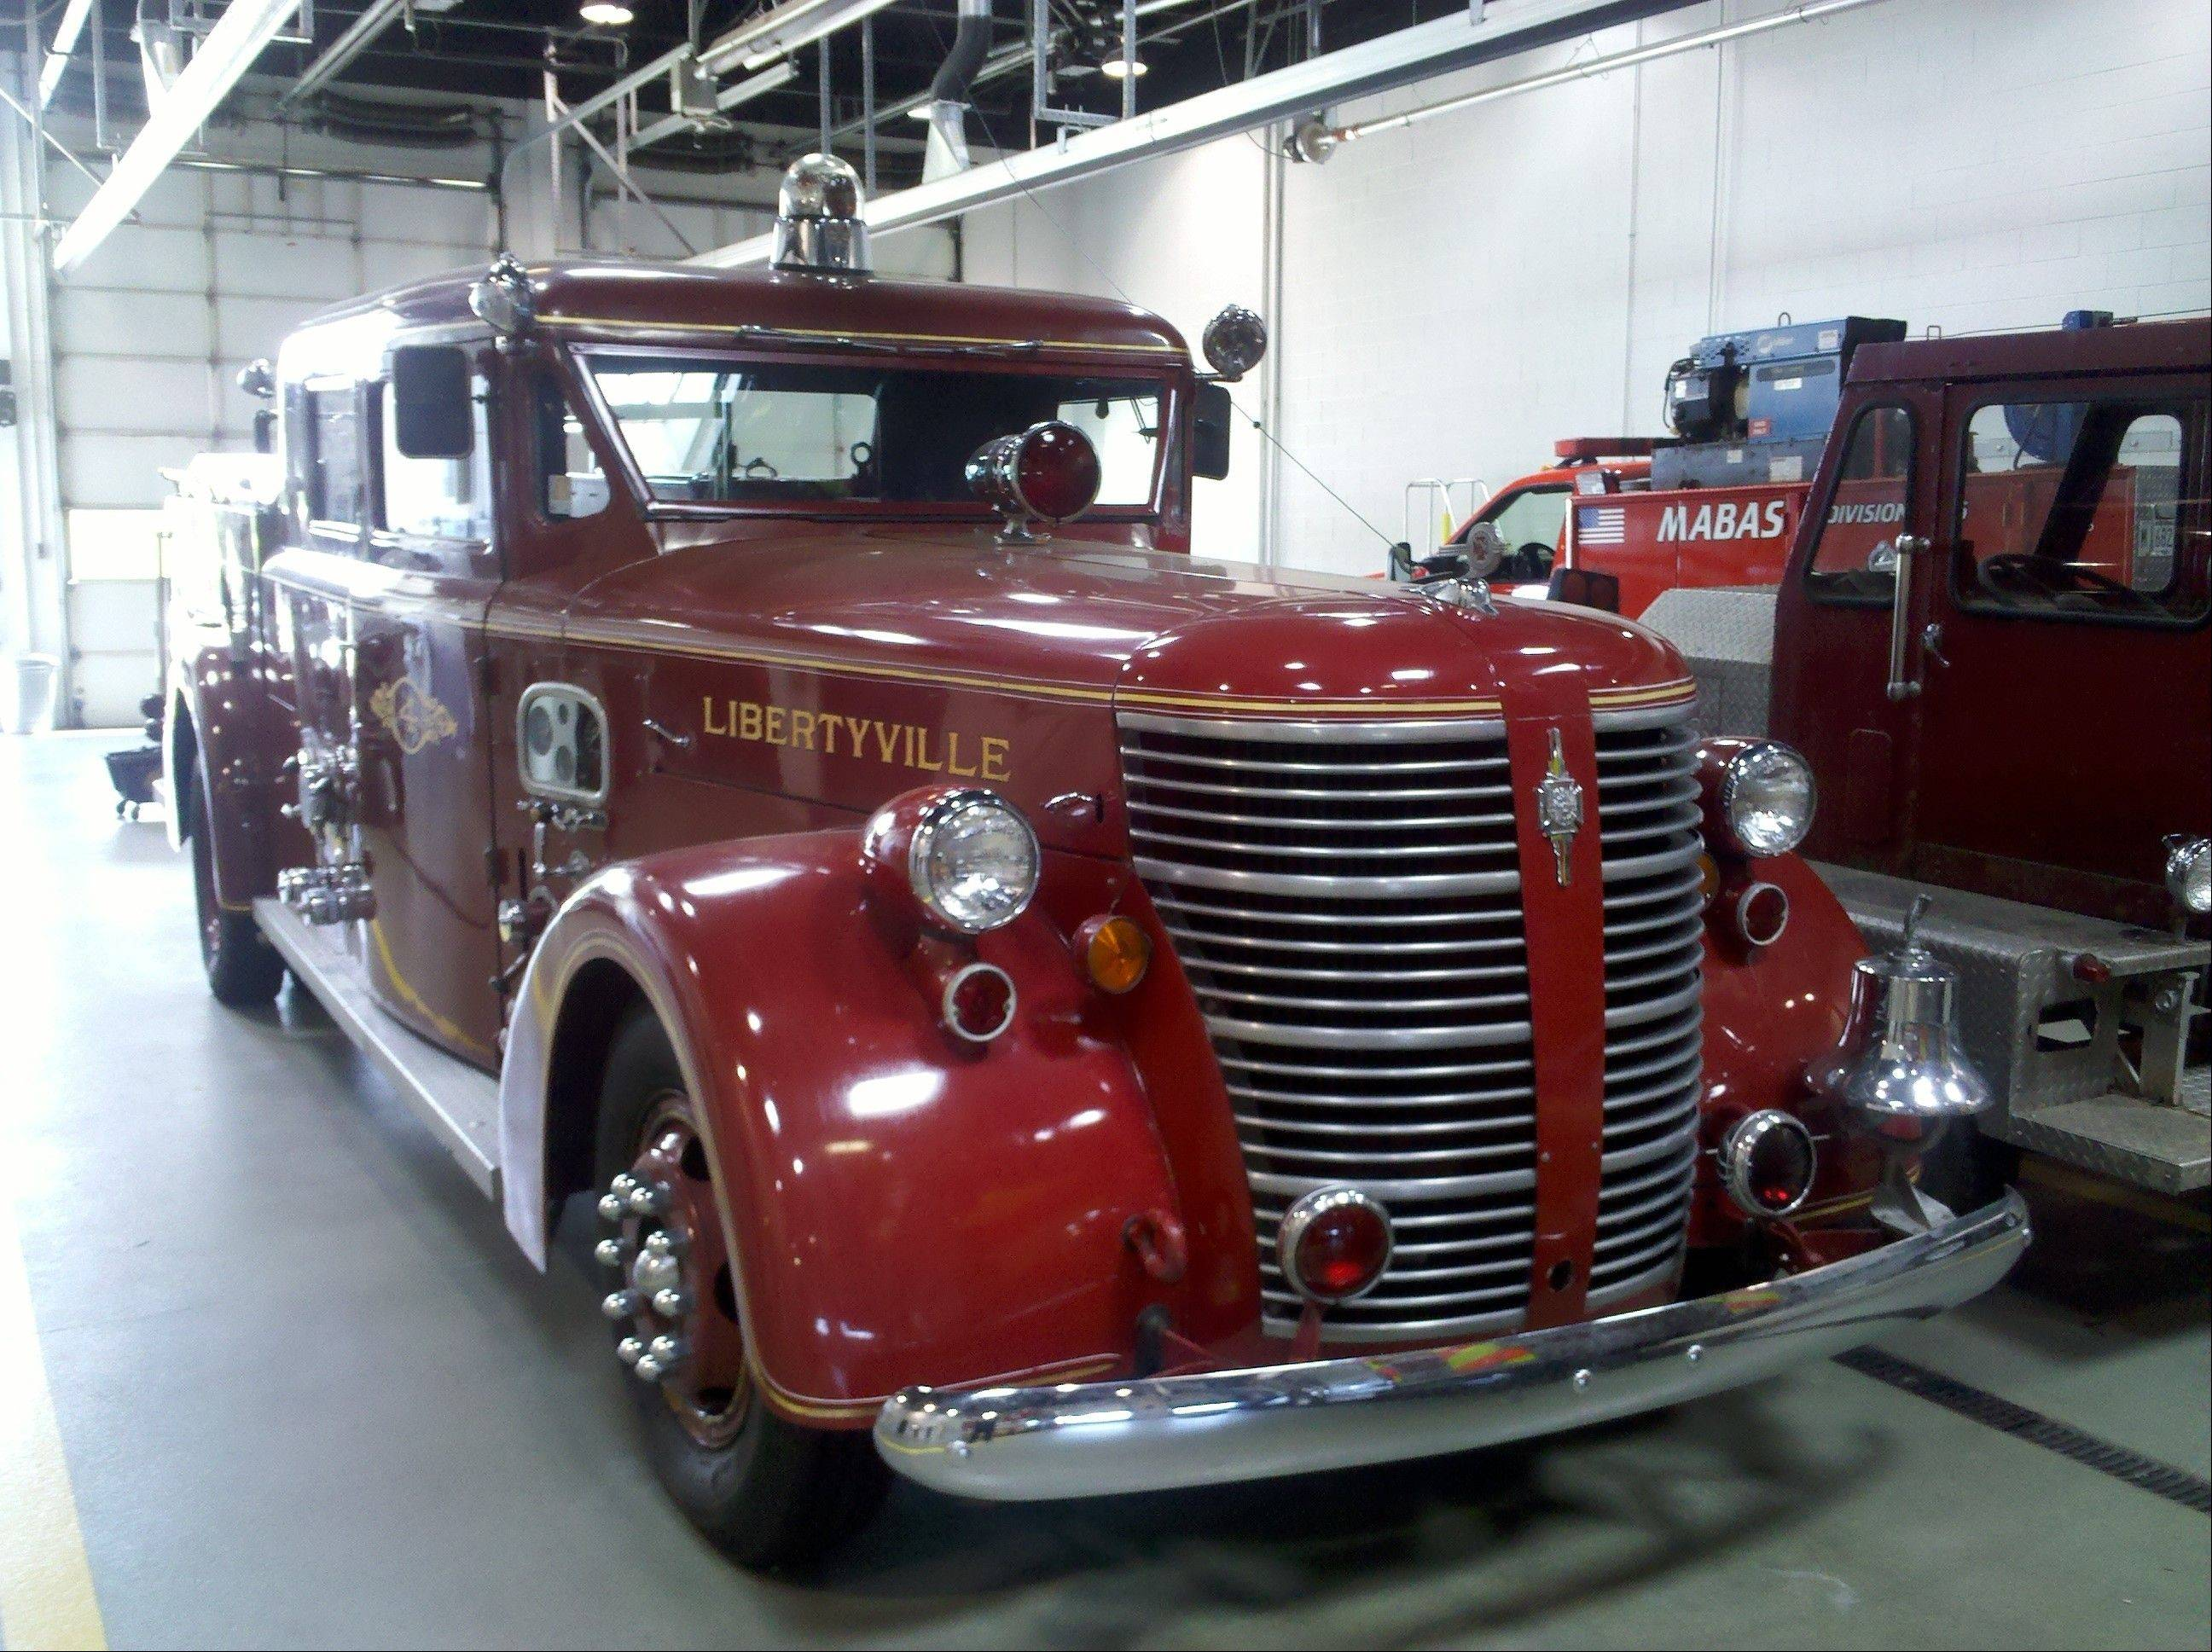 An Antique Libertyville fire truck was one of the classic cars that appeared in the 2011 Car Fun on 21 show.